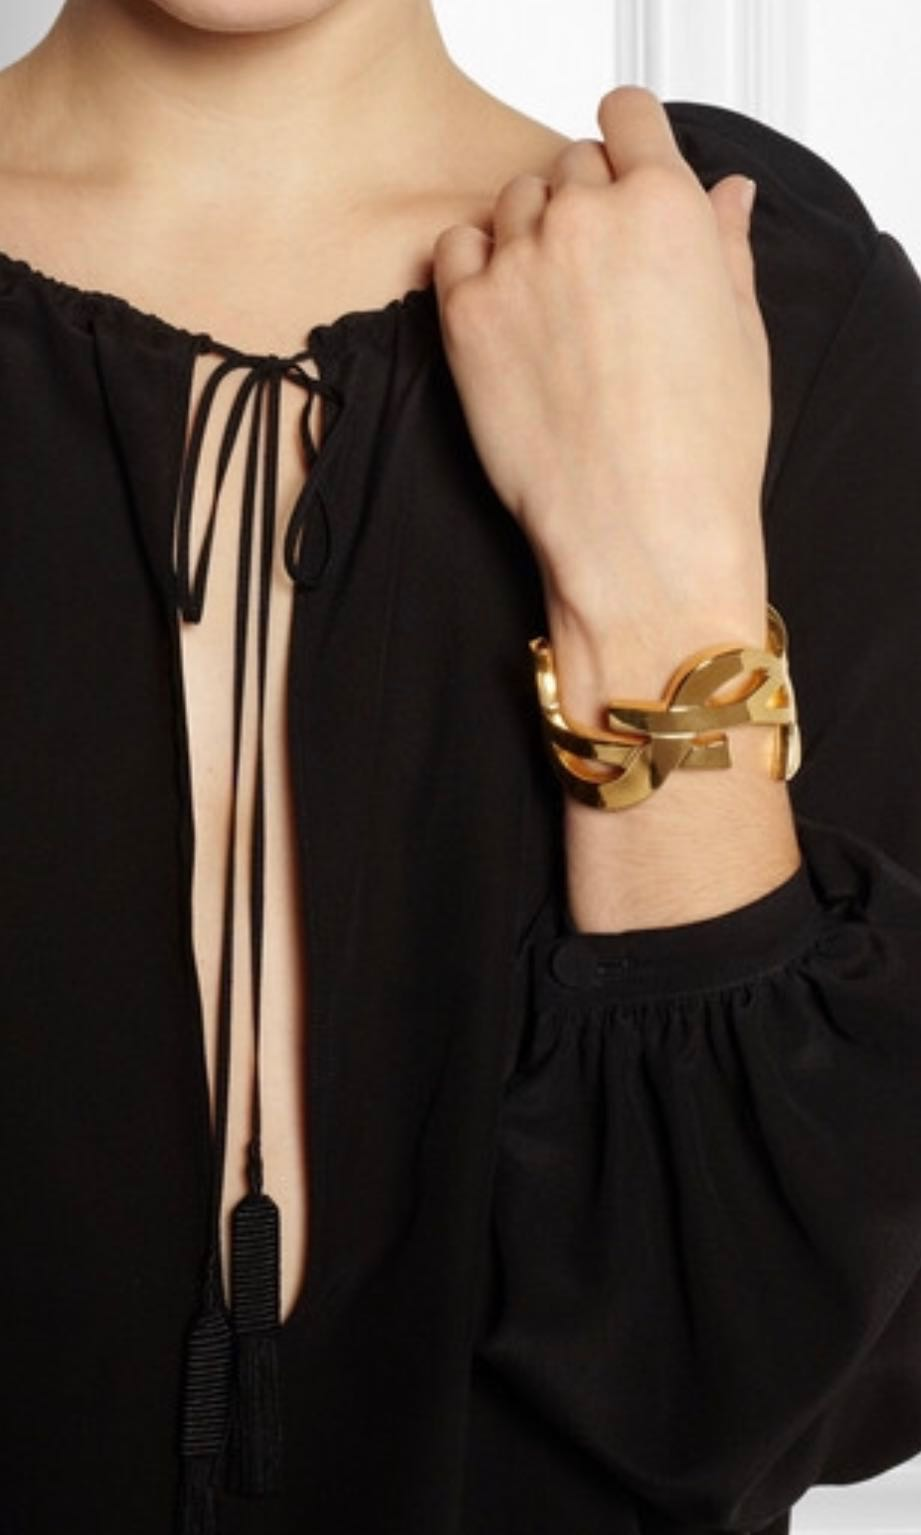 89a3274c330 Saint Laurent YSL gold cuff bracelet, Women's Fashion, Jewellery on  Carousell